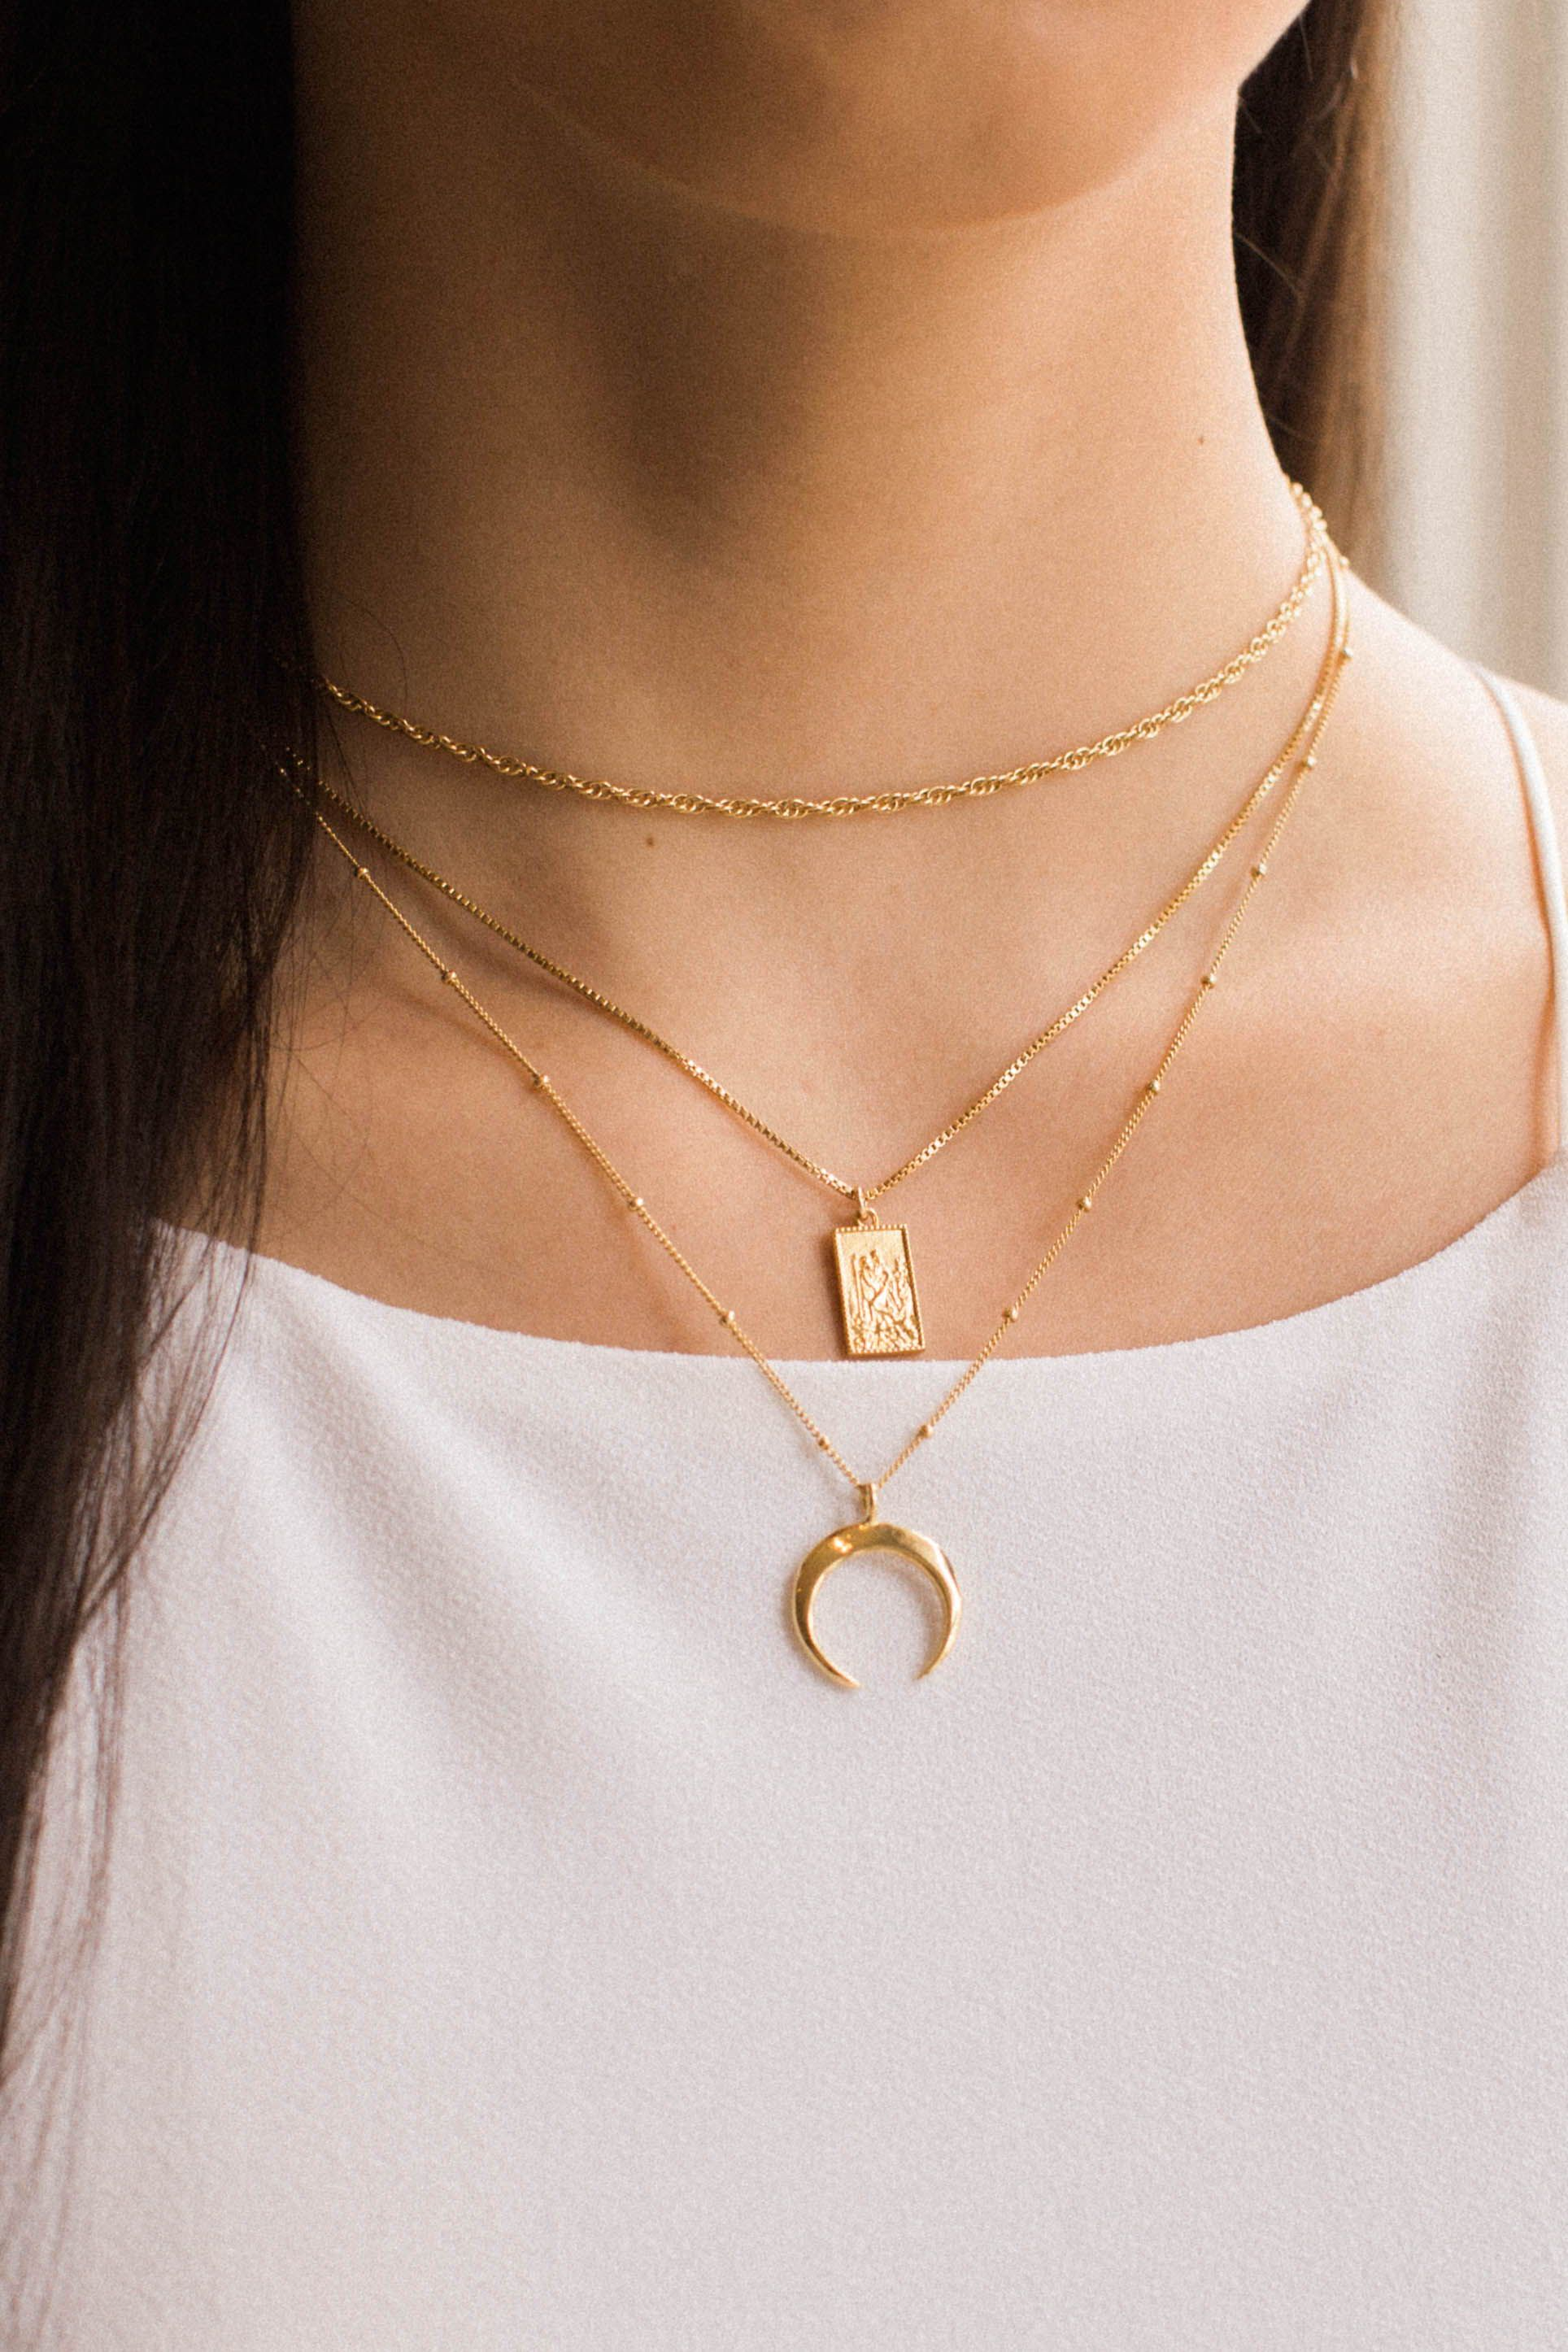 Some Layered Favorites Including Our Dainty Horn Necklace Rectangle Trave Sterling Silver Chain Necklace Gold Diamond Wedding Rings Silver Dragonfly Necklace